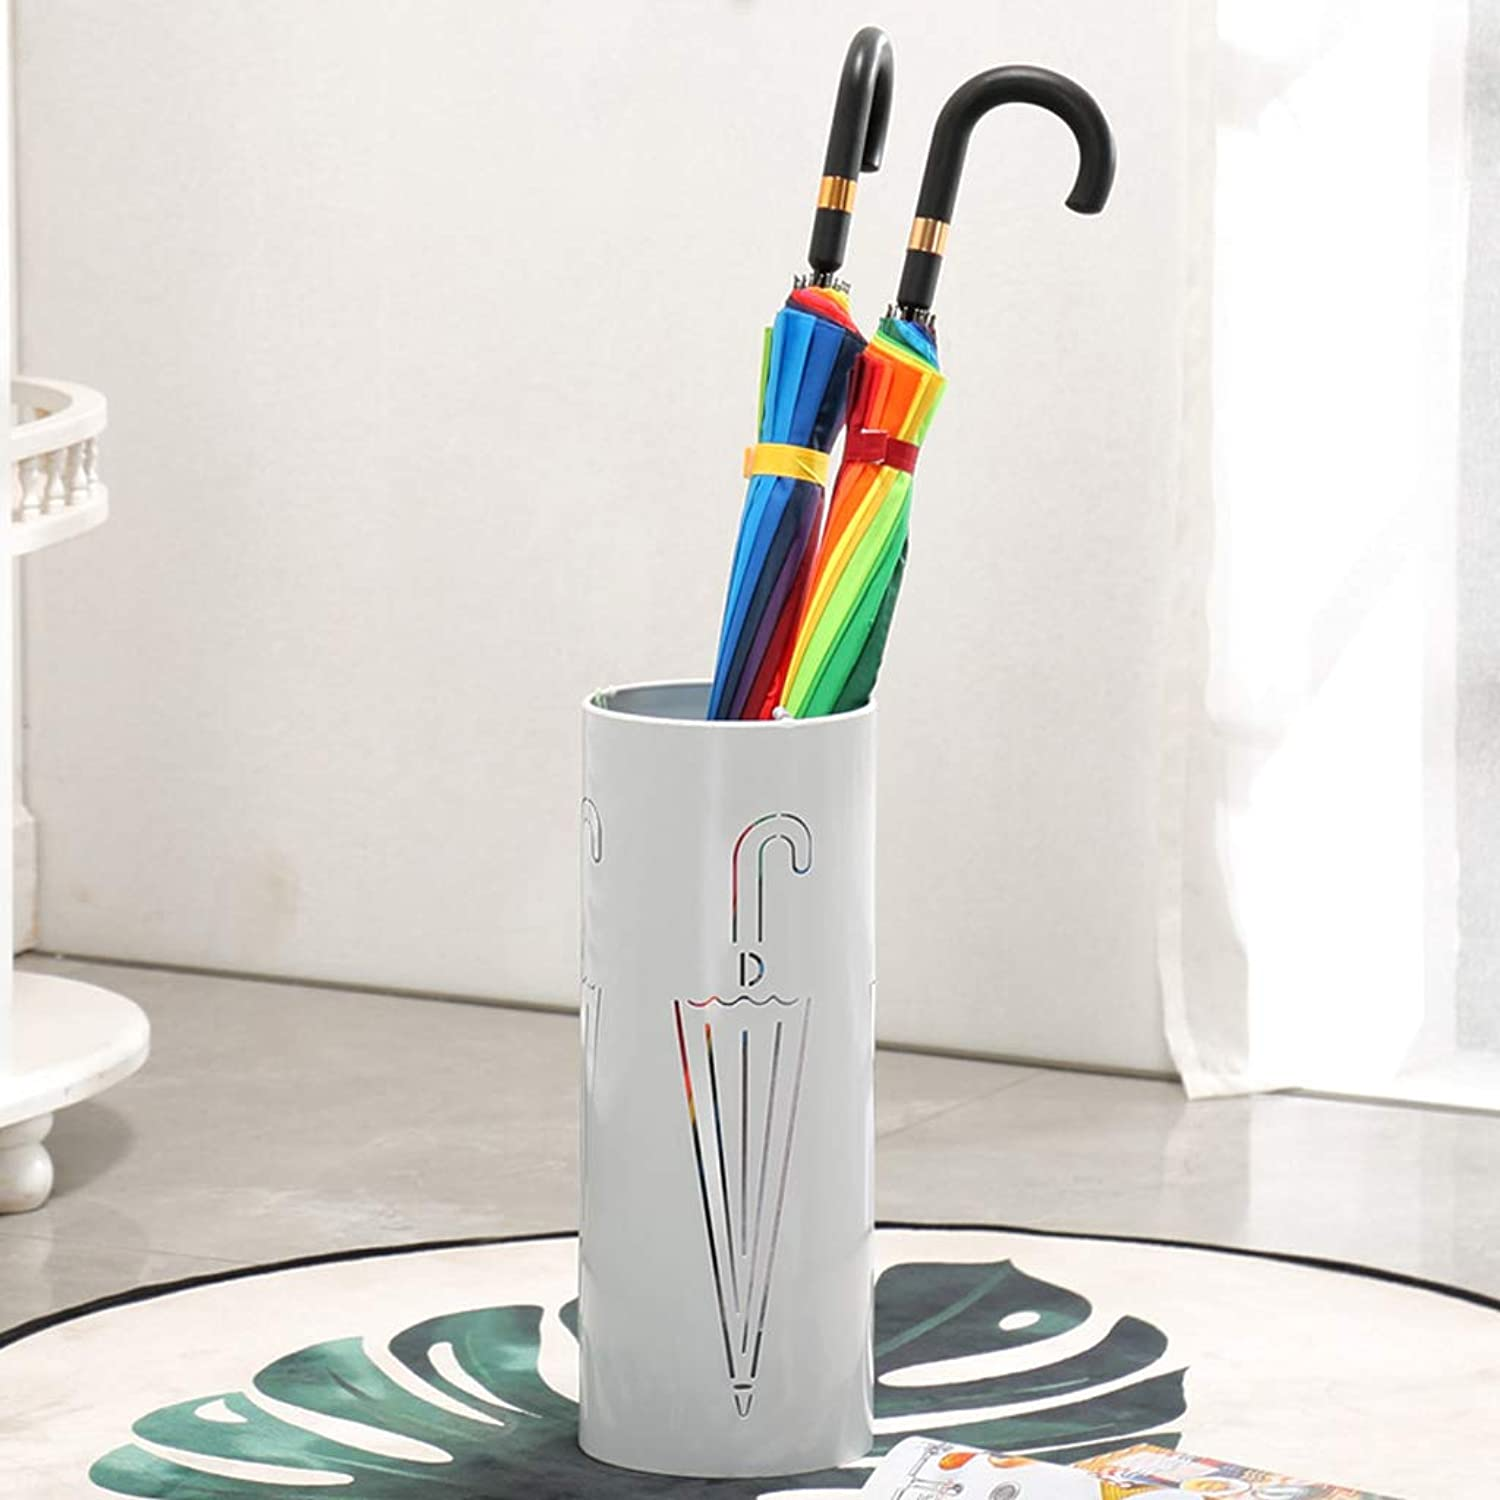 HLJ Originality Household Umbrella Stand Hotel Lobby Umbrella Stand Simple Umbrella Stand Antirust Entrance Hall Umbrella Stand